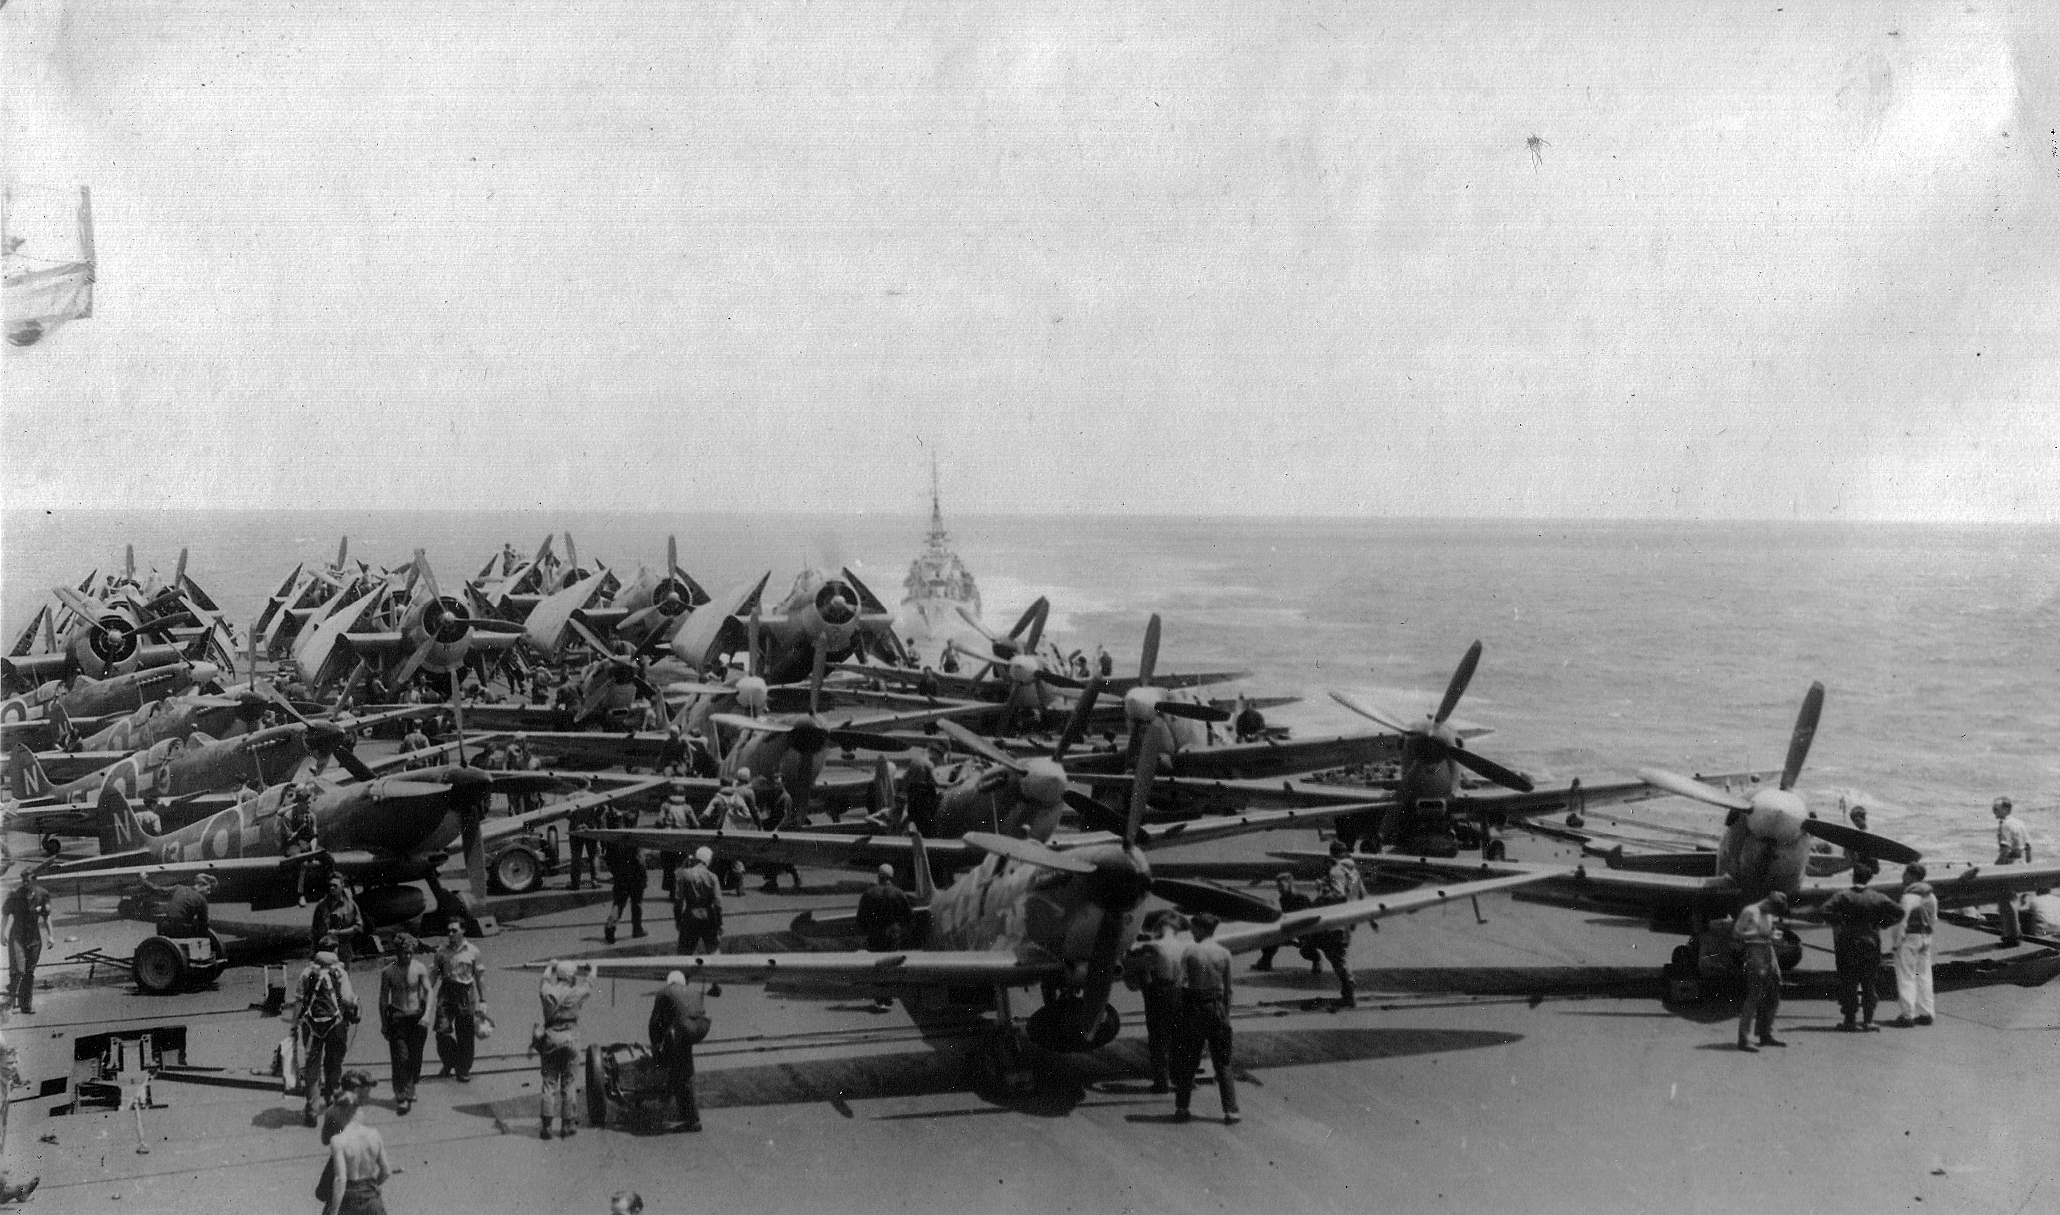 """Seafires and Avengers are ranged for a strike aboard HMS IMPLACABLE. This carrier did not arrive until after the Sakishima campaign. Her Seafires can be identified by the large tear-drop drop tanks adapted from RAAF Kittyhawk stocks. HMS INDEFATIGABLE'S Seafires used the RAF's conformal """"slipper"""" style."""